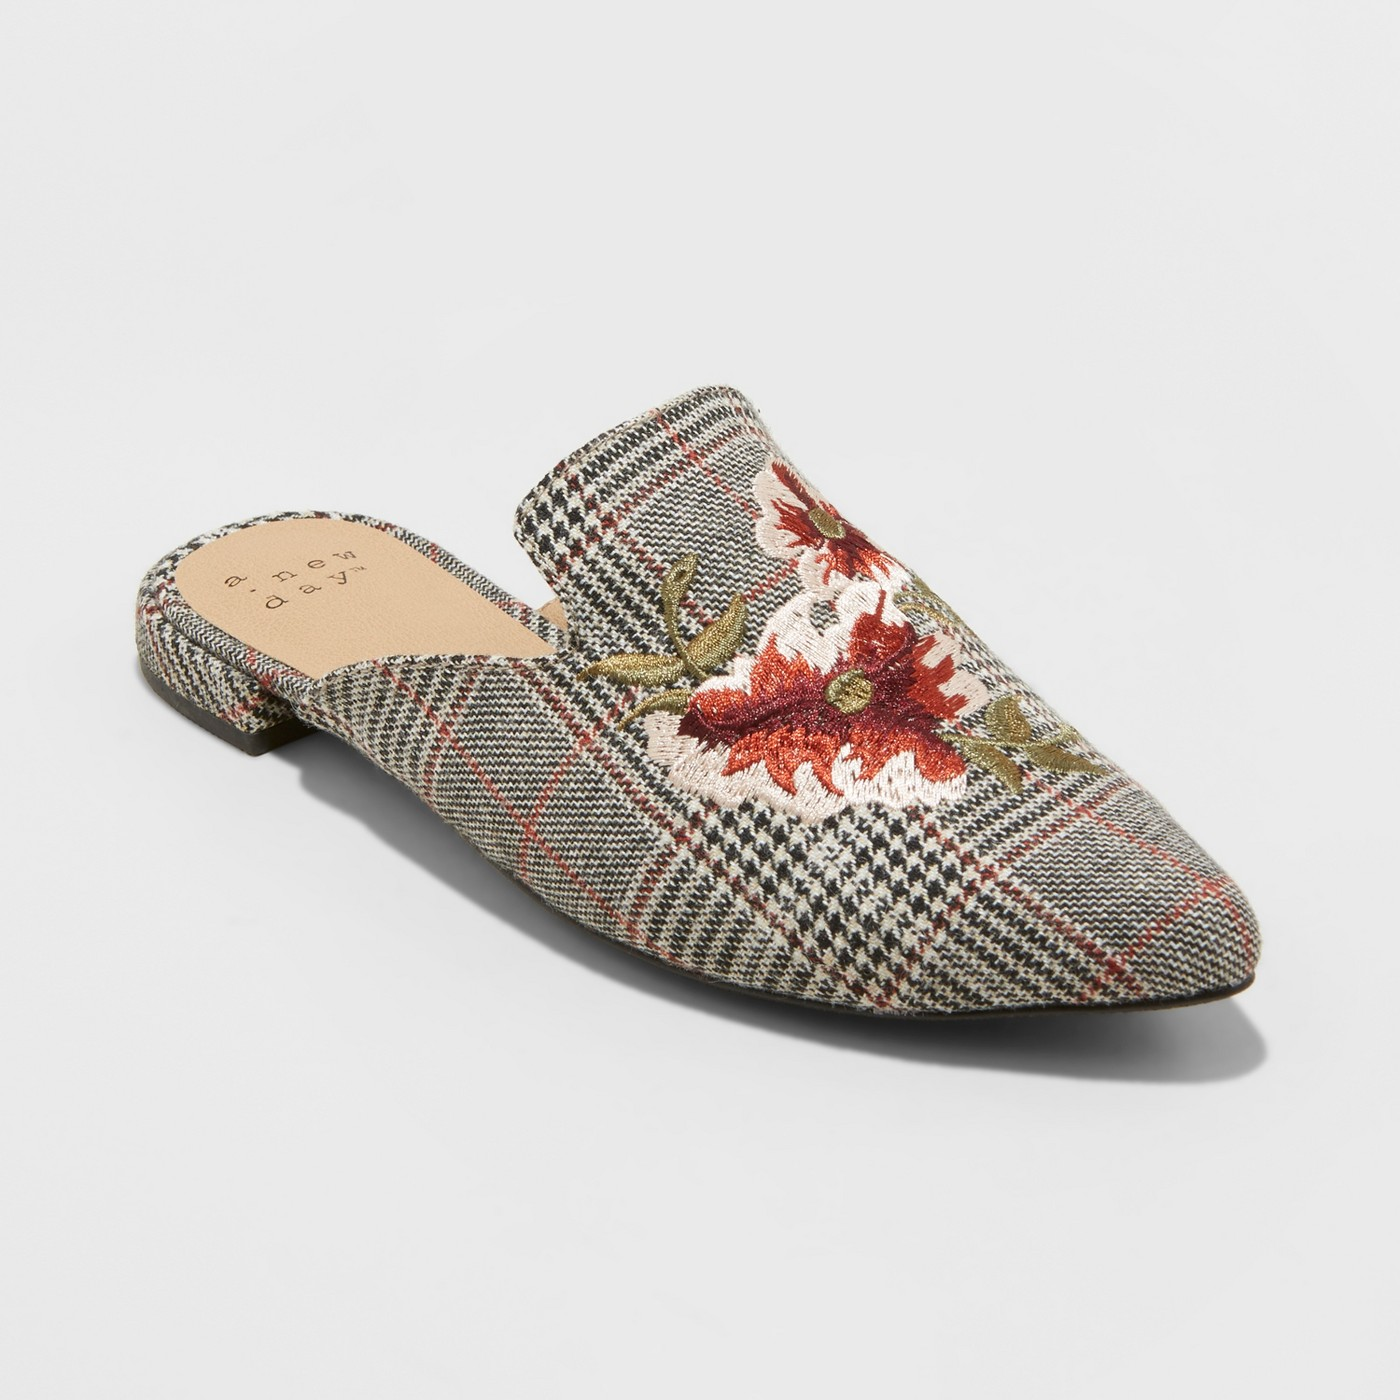 Women's Eve Plaid Embroidered Backless Mules - A New Day™ Gray - image 1 of 6